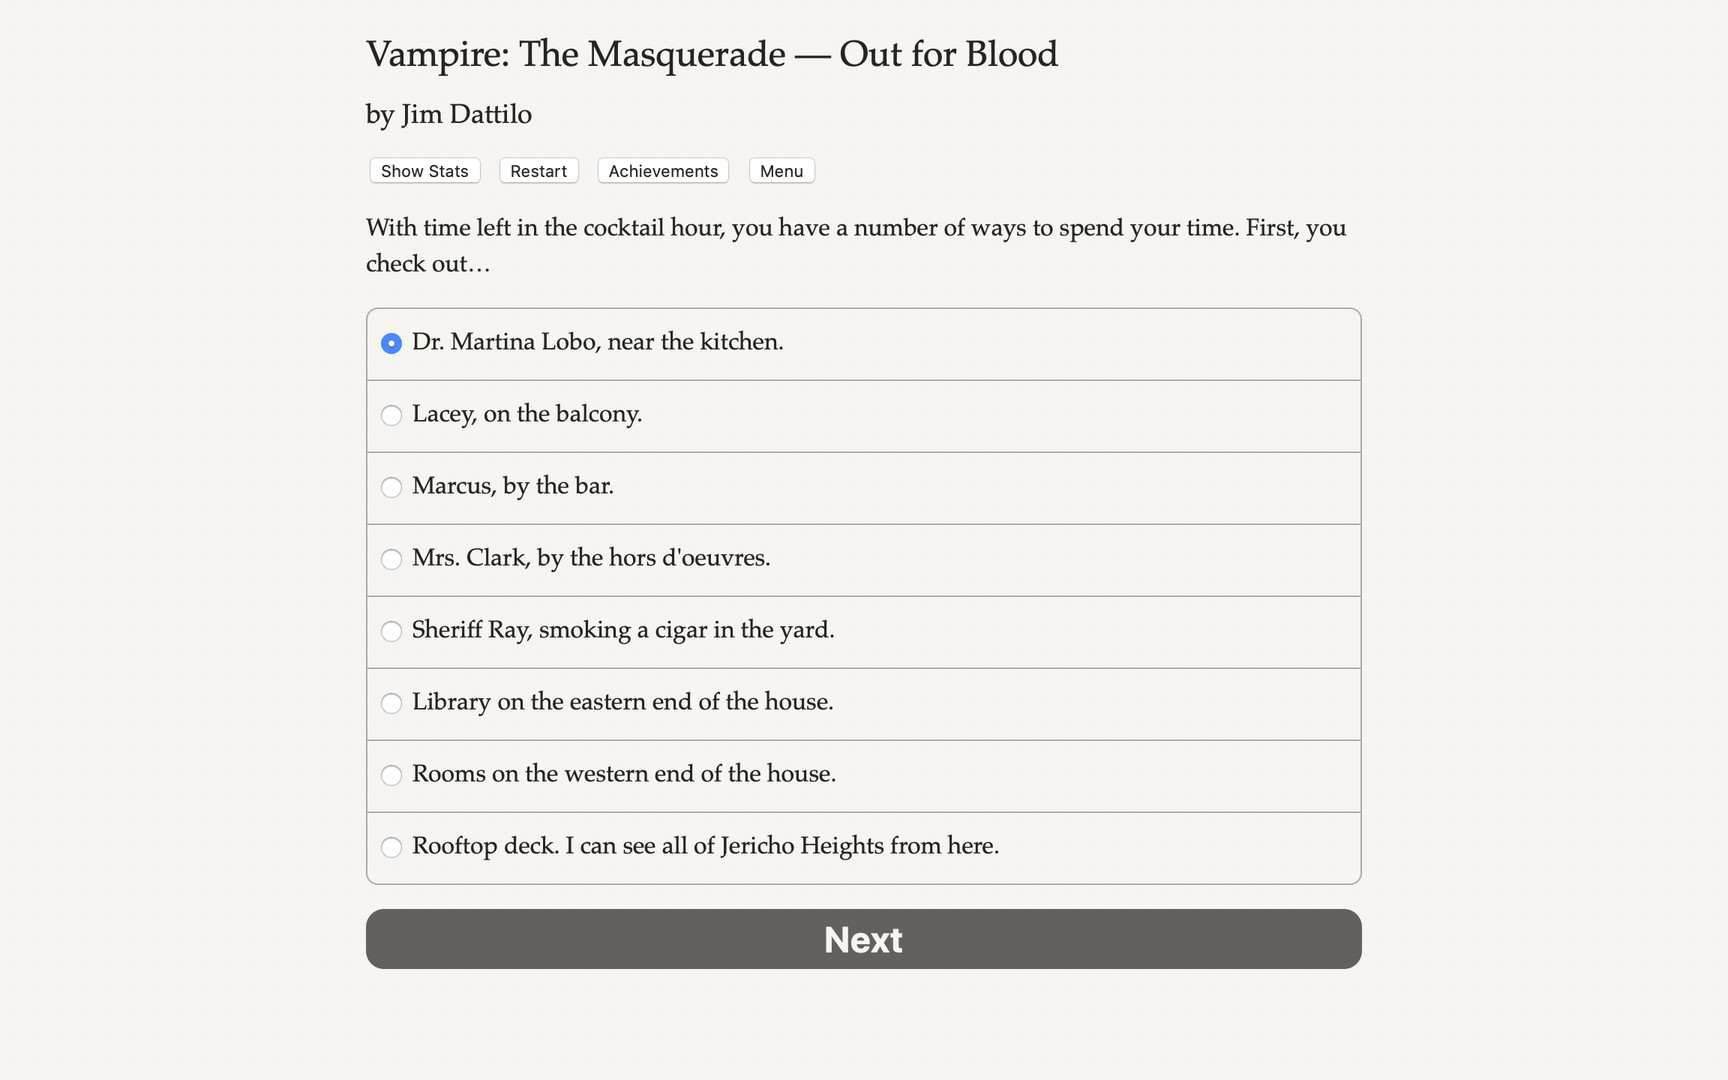 Vampire: The Masquerade — Out for Blood Free Download